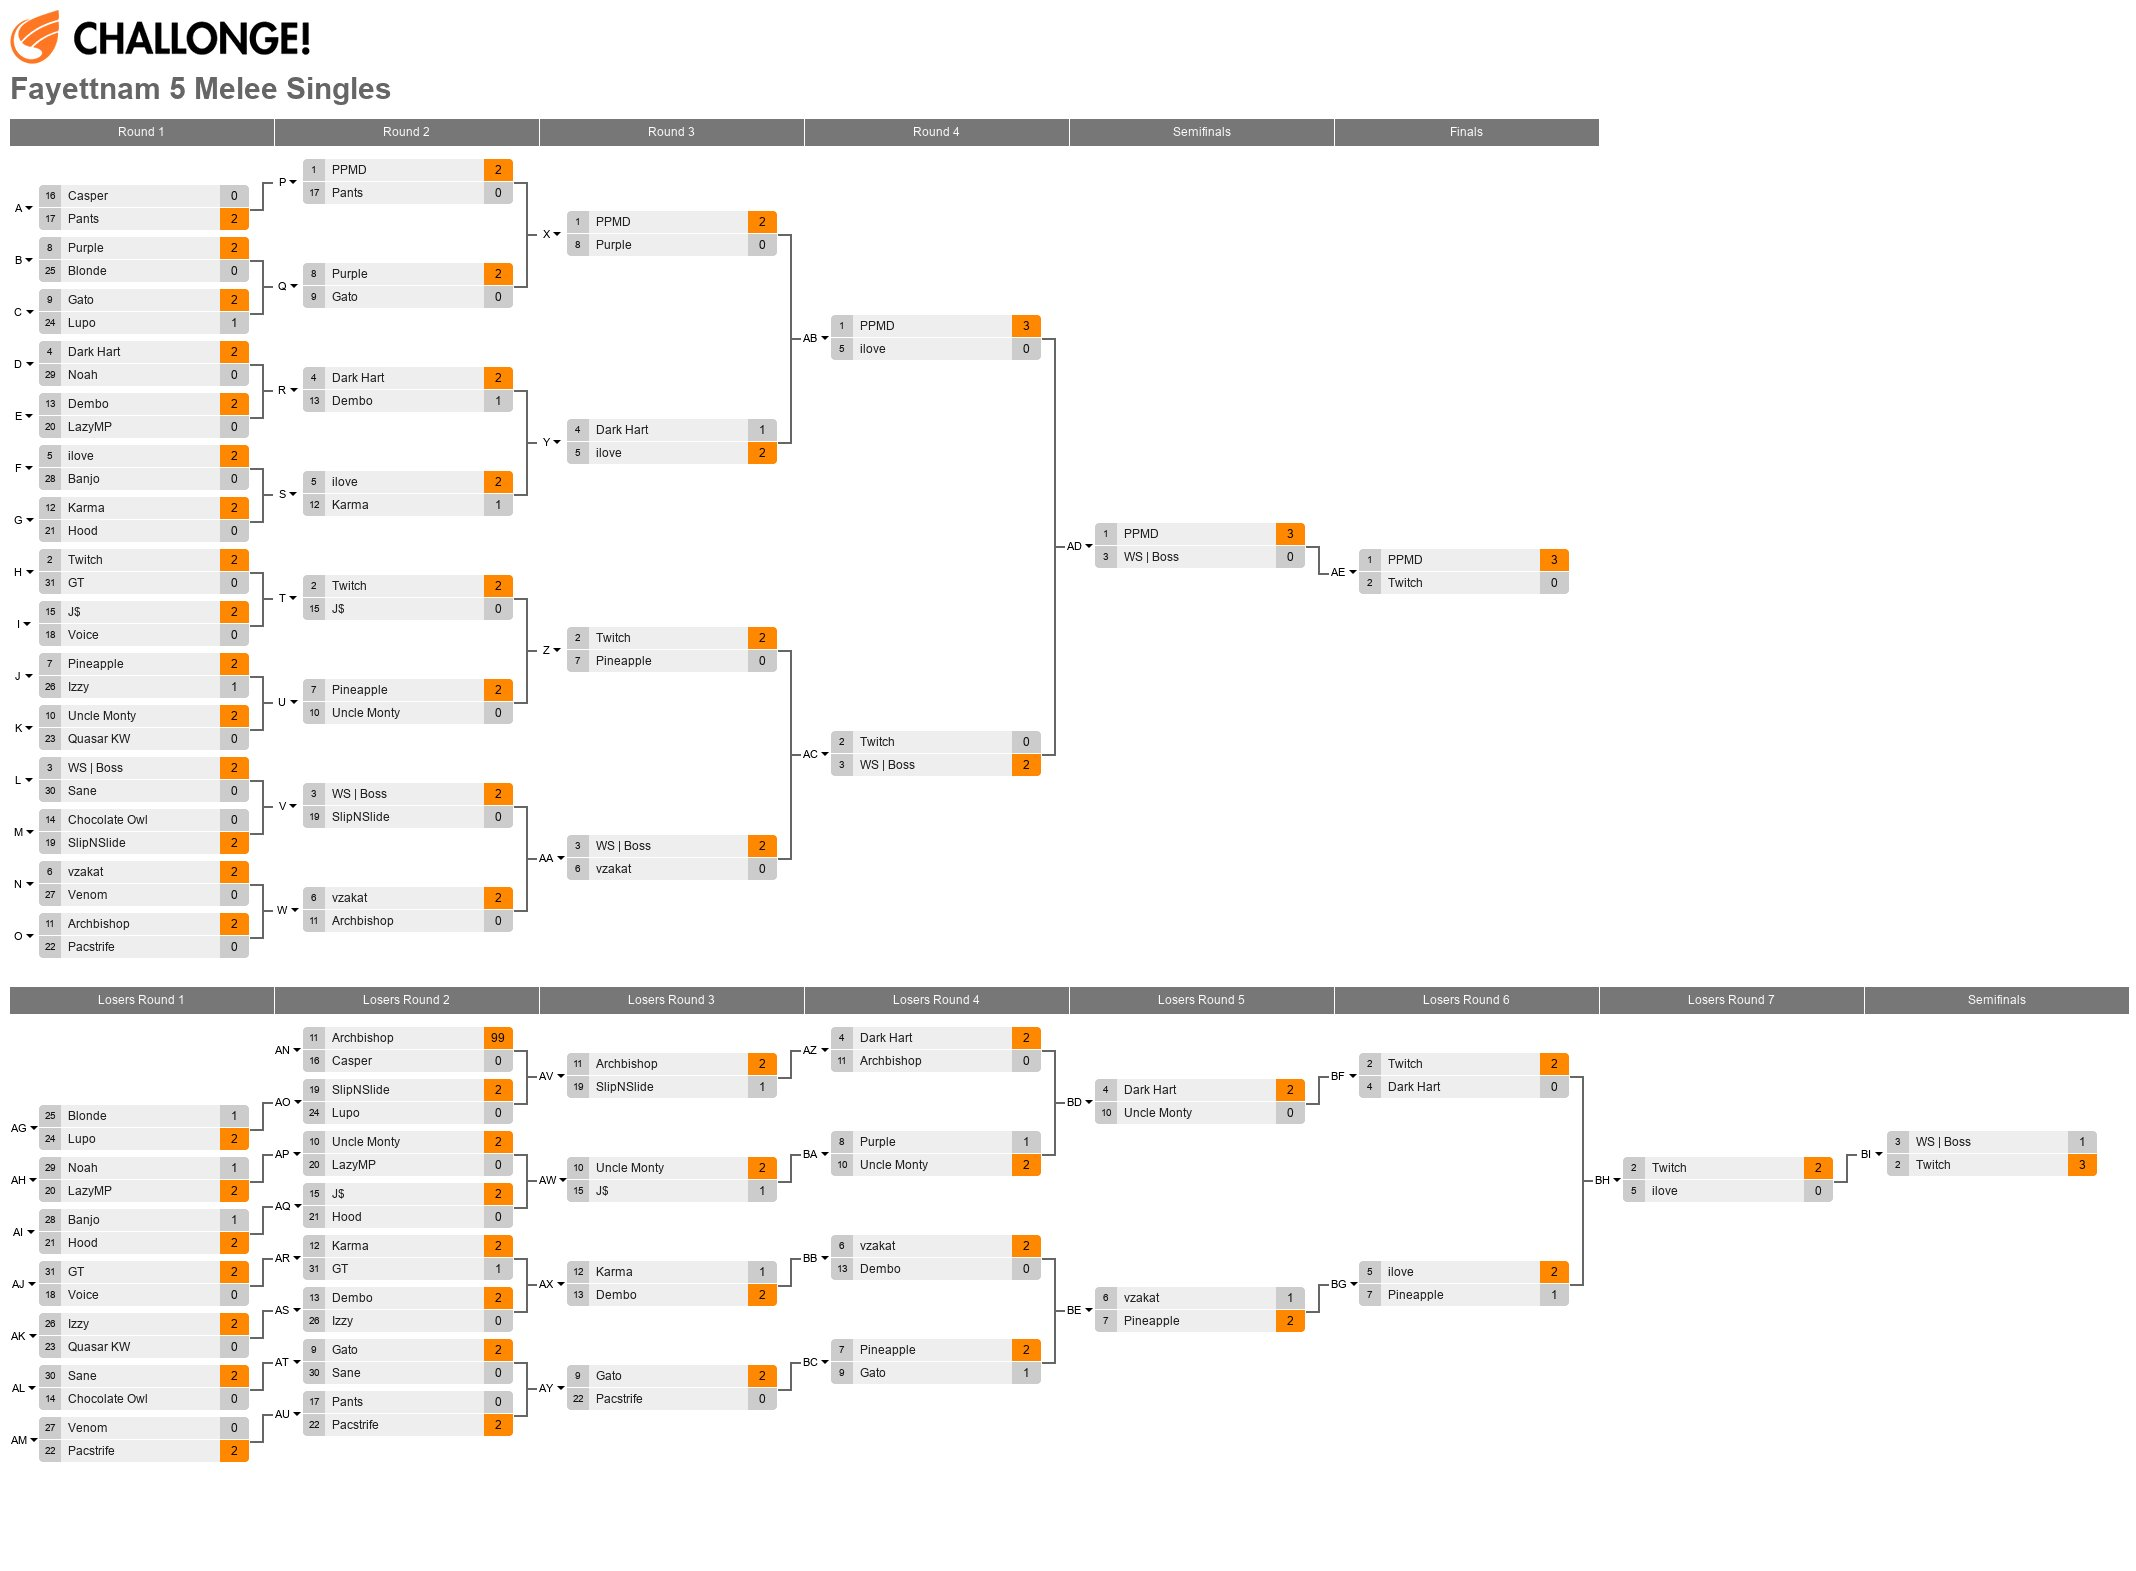 Fayettnam 5 Results (ft. PPMD, Boss, Twitch, ilove, Kai